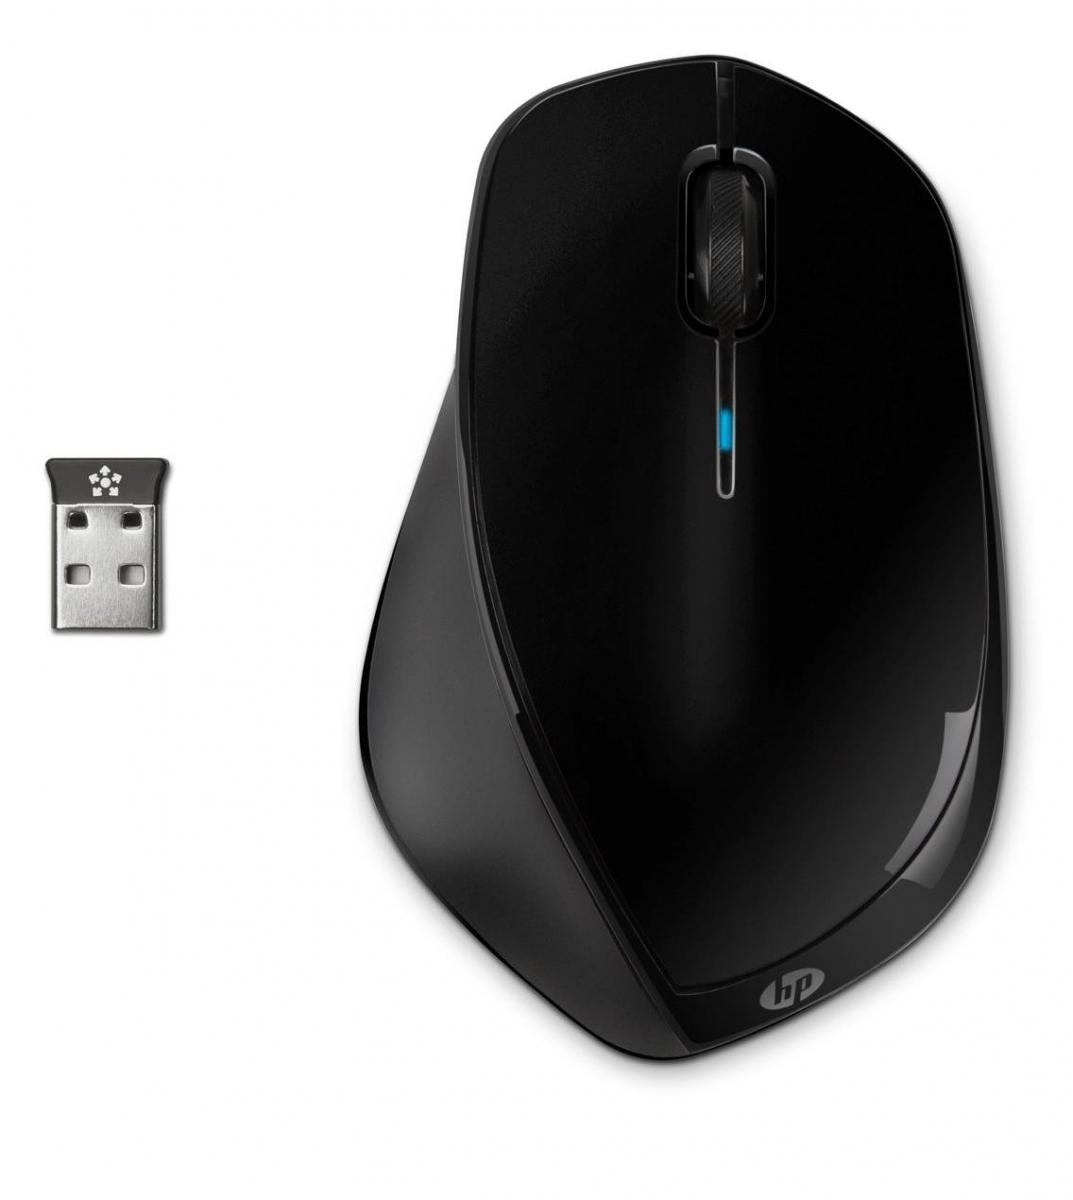 HP x4500 Wireless Mouse- Sparkling Black H2W26AA#ABB